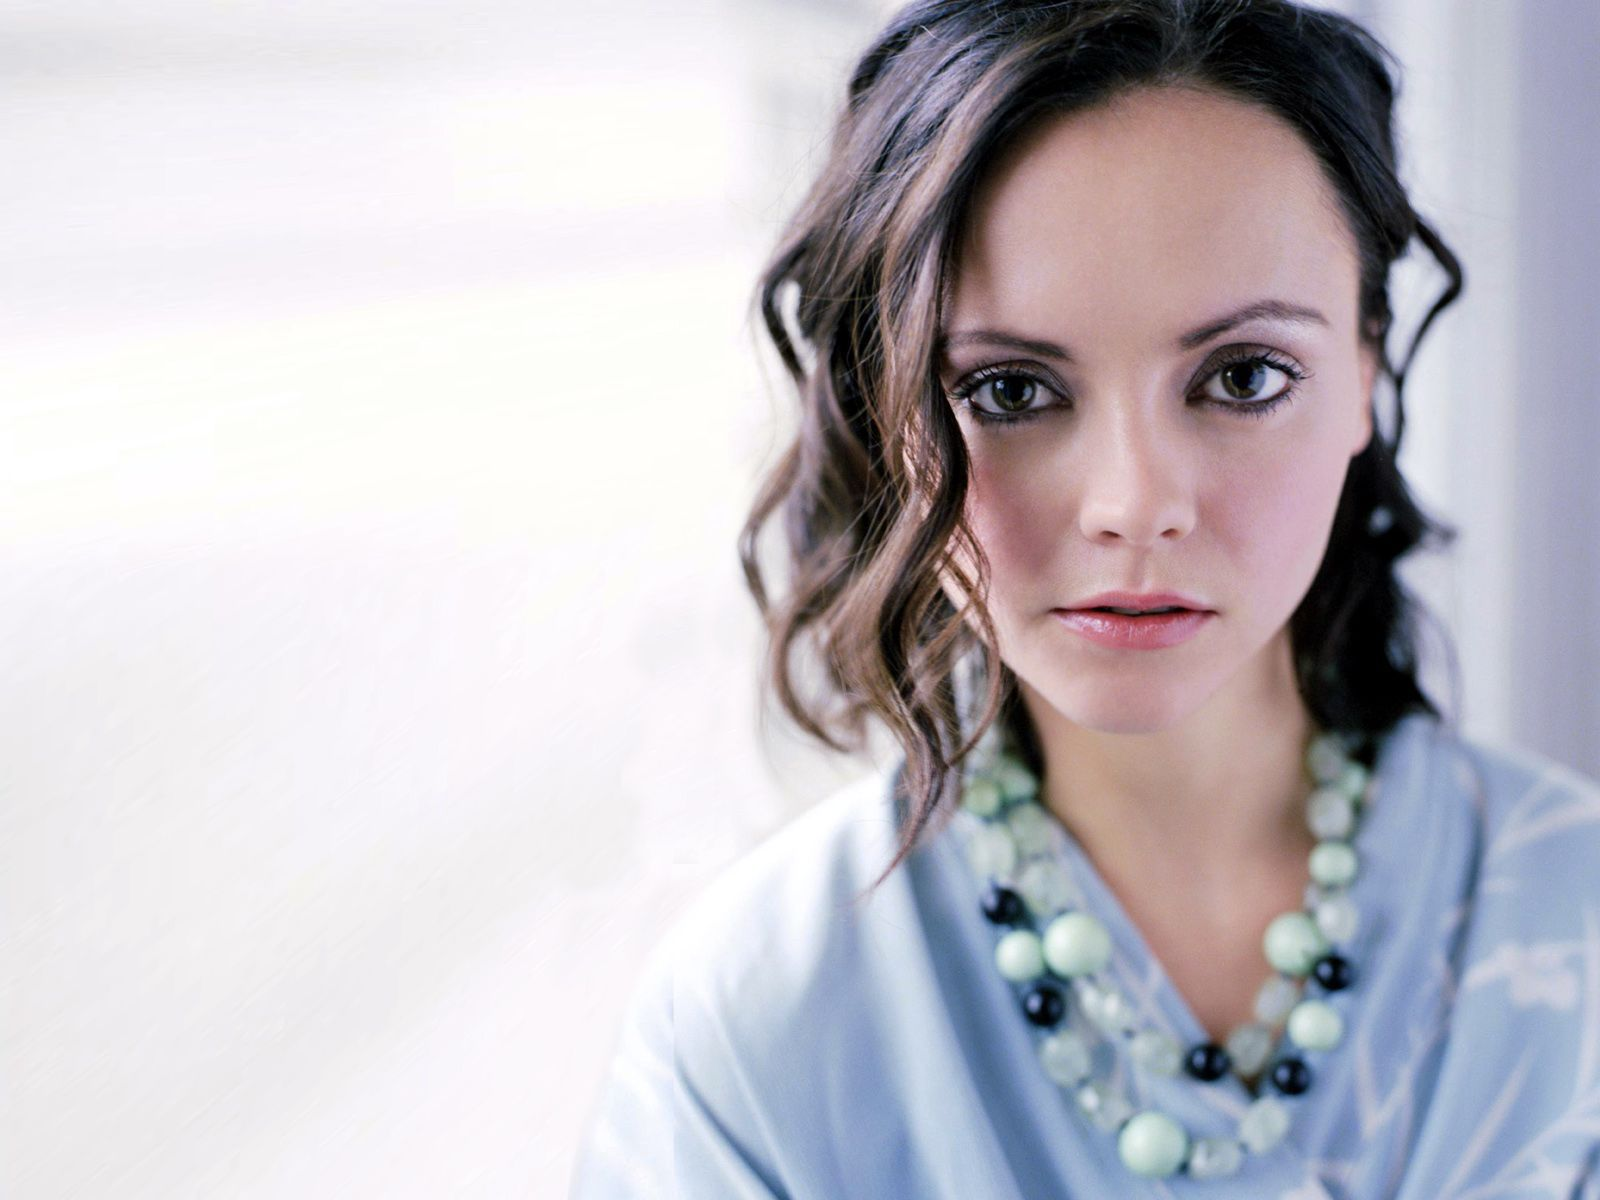 Christina Ricci Wallpapers Images Photos Pictures Backgrounds 1600x1200